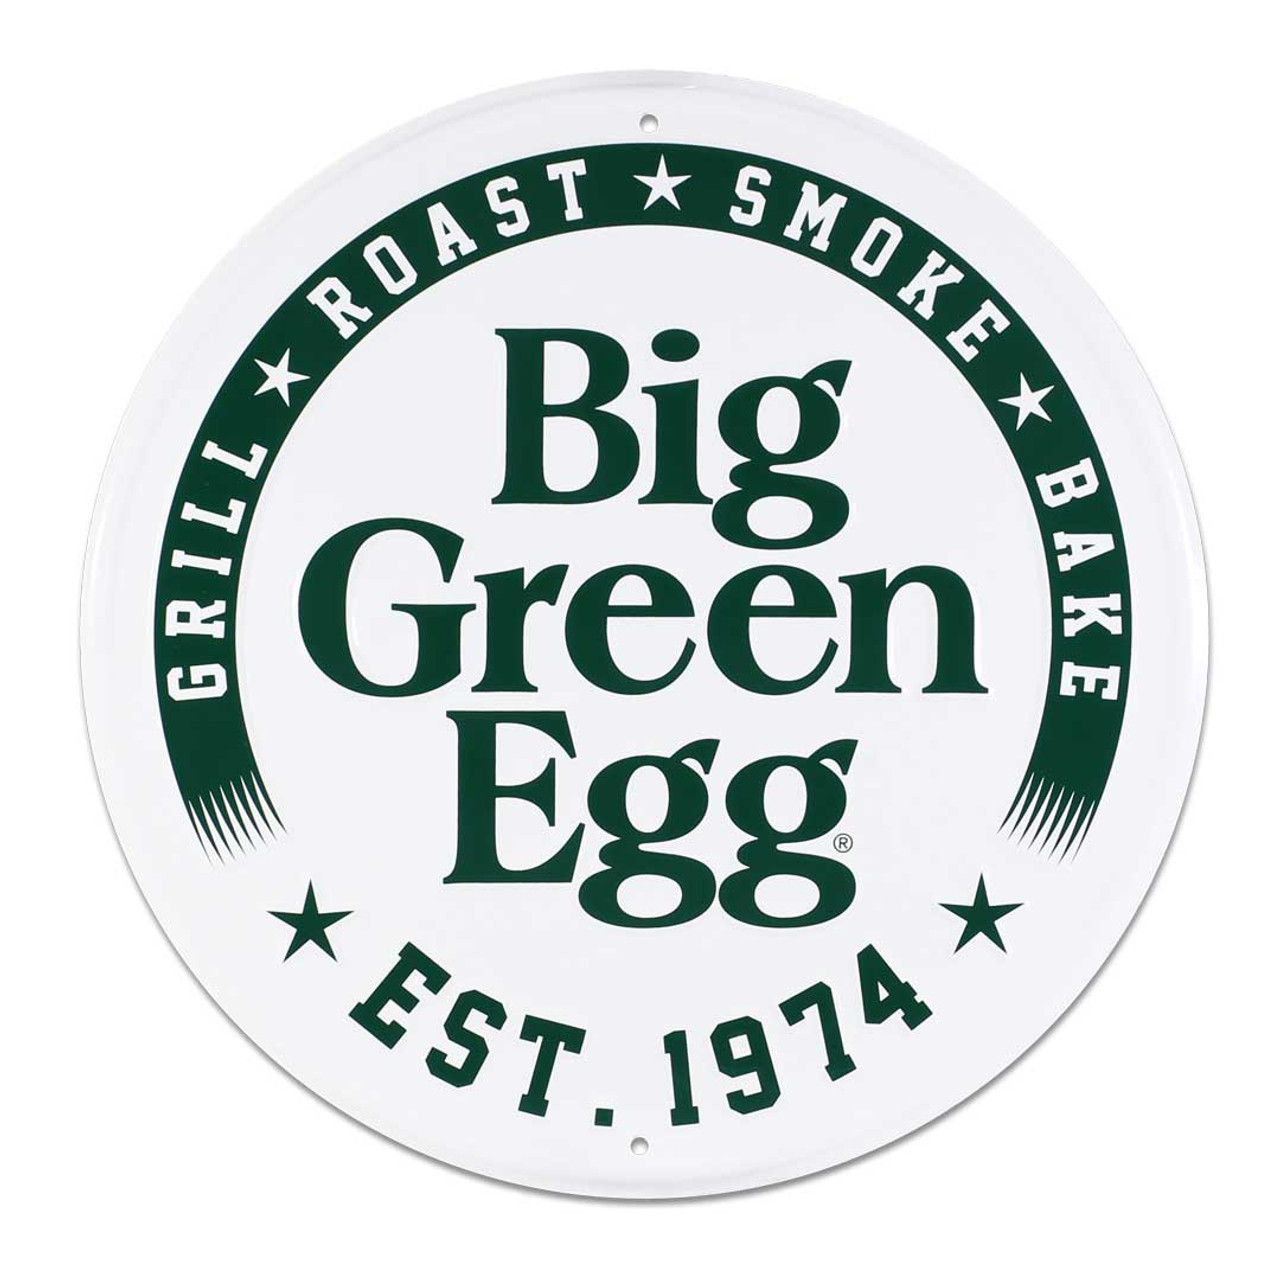 Round Stamped Aluminum Est. 1974 Sign, White Big Green Egg Sign